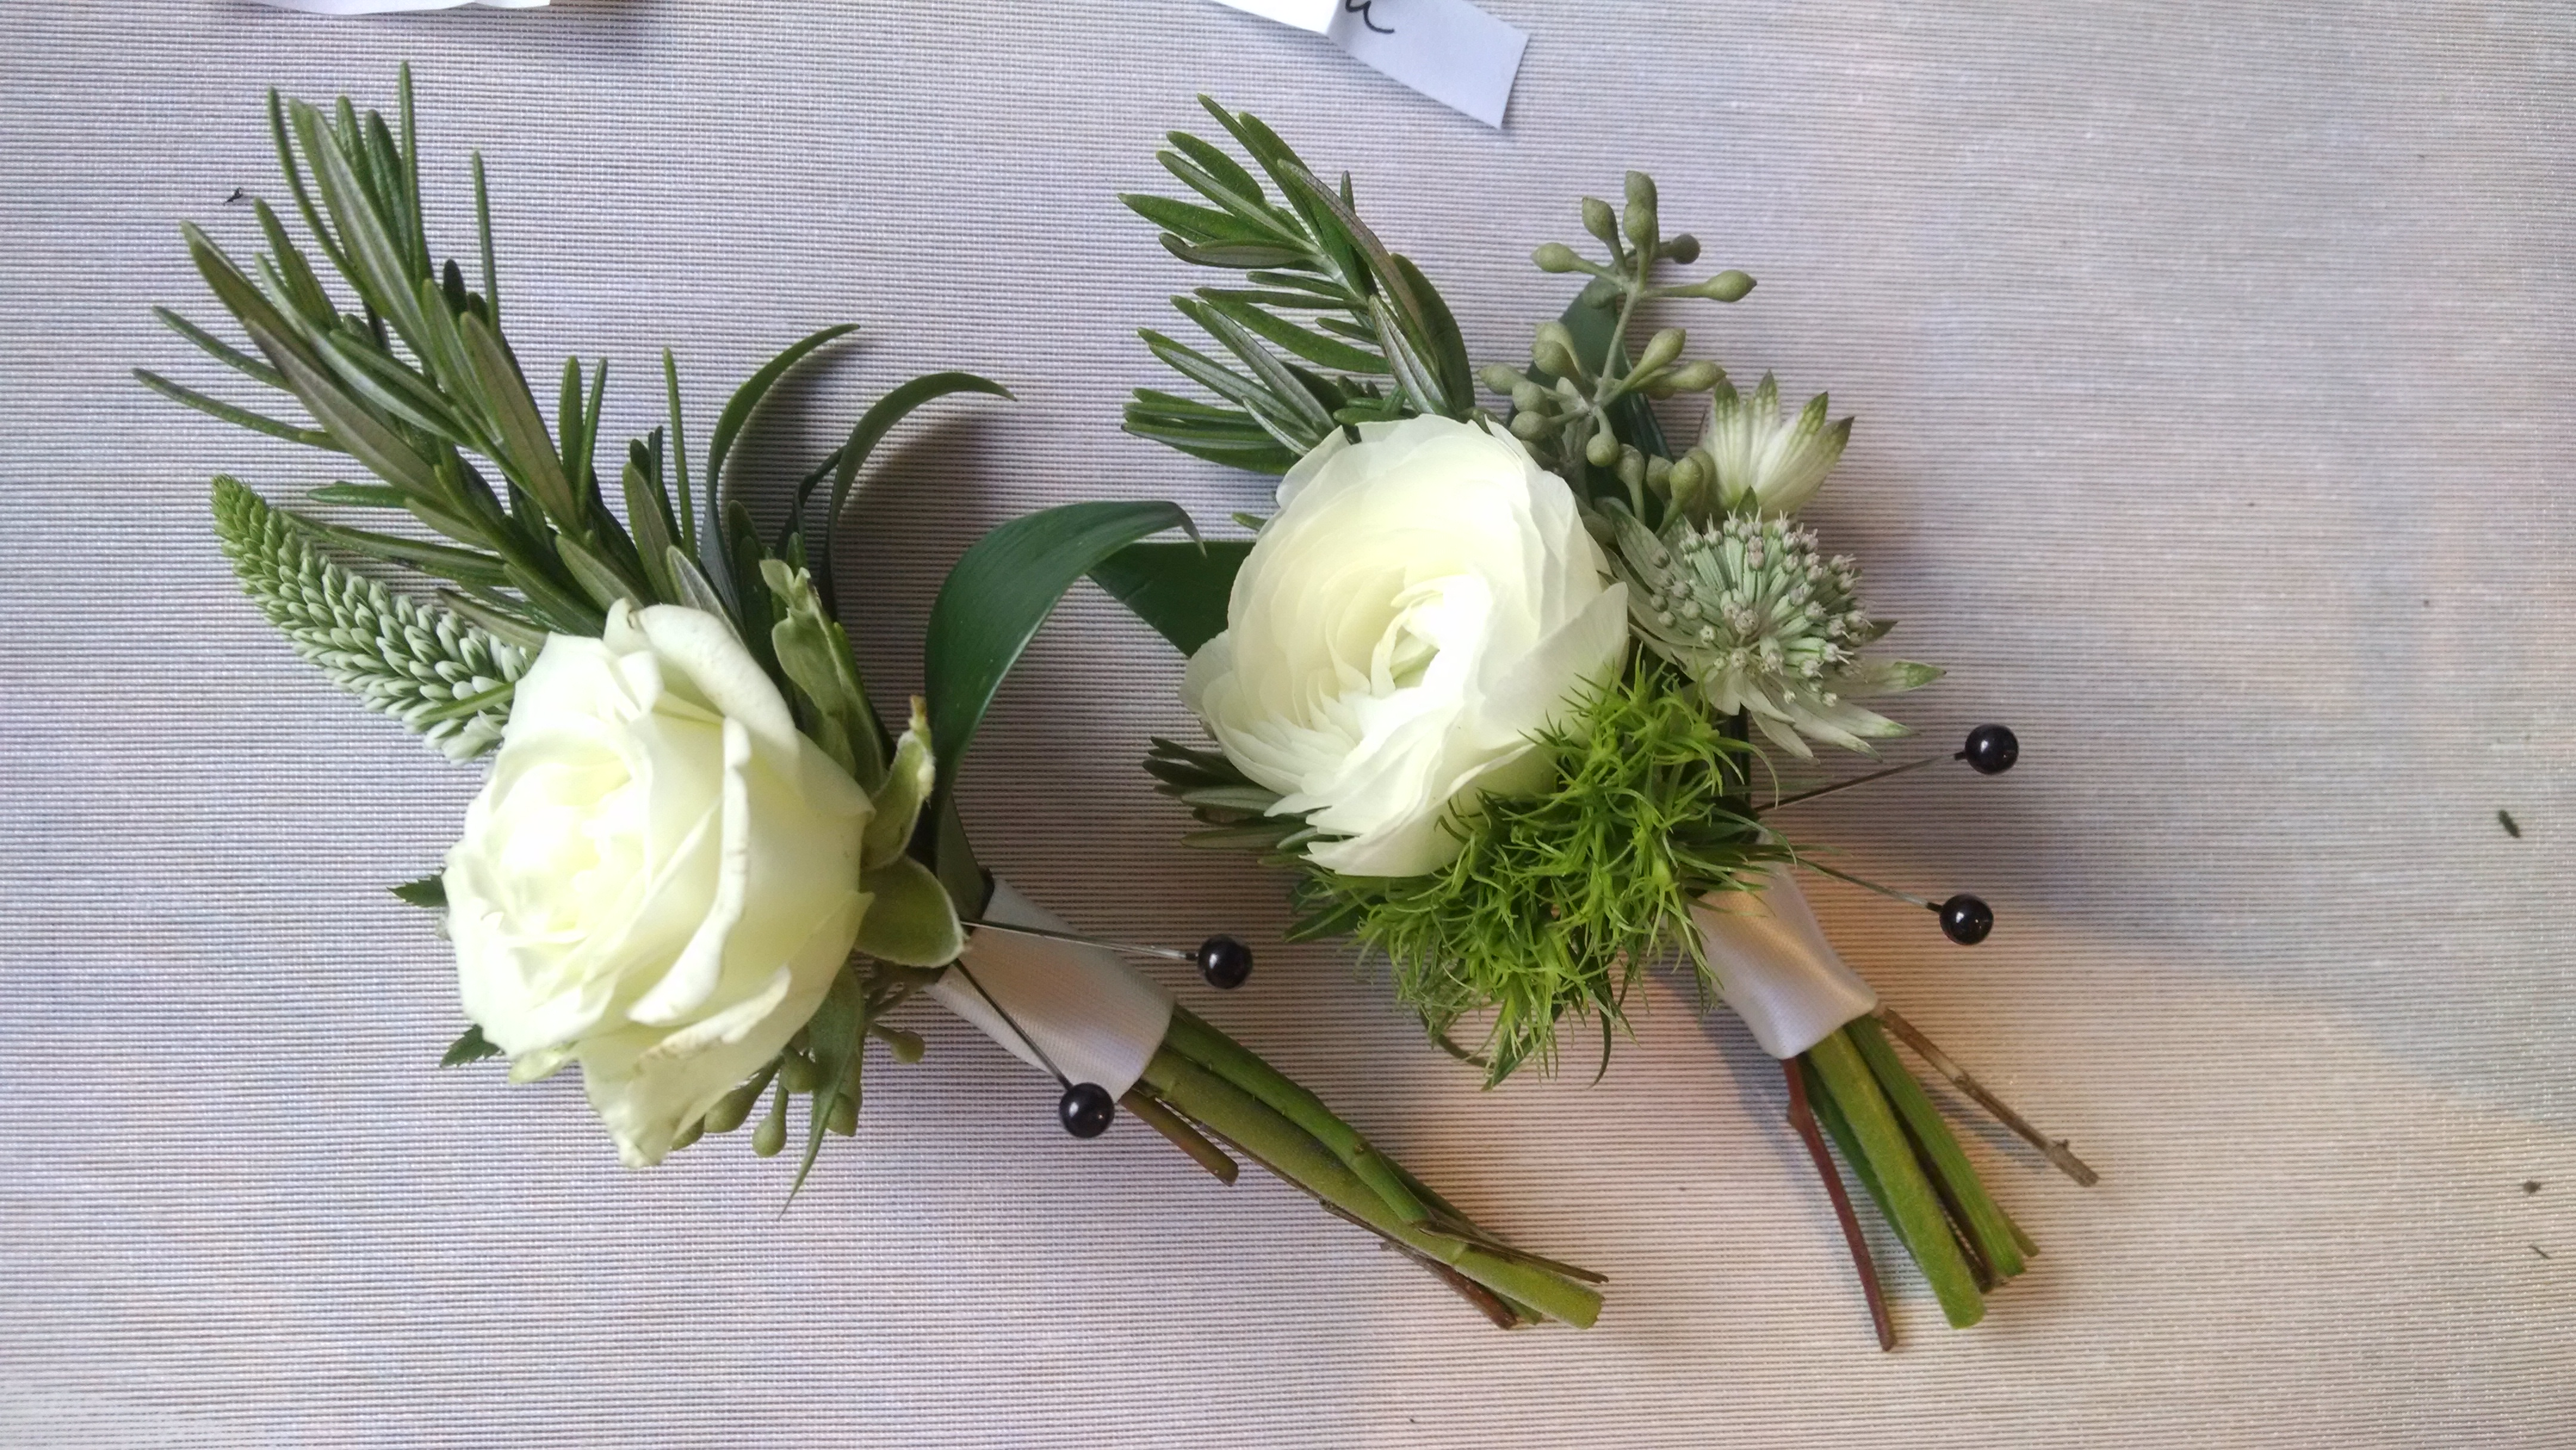 Boutonniere minneapolis semple mansion wedding boutonniere white boutonniere minneapolis semple mansion wedding boutonniere white green eucalyptus rosemary foliage dianthus greenery florist grooms boutonniere junglespirit Images